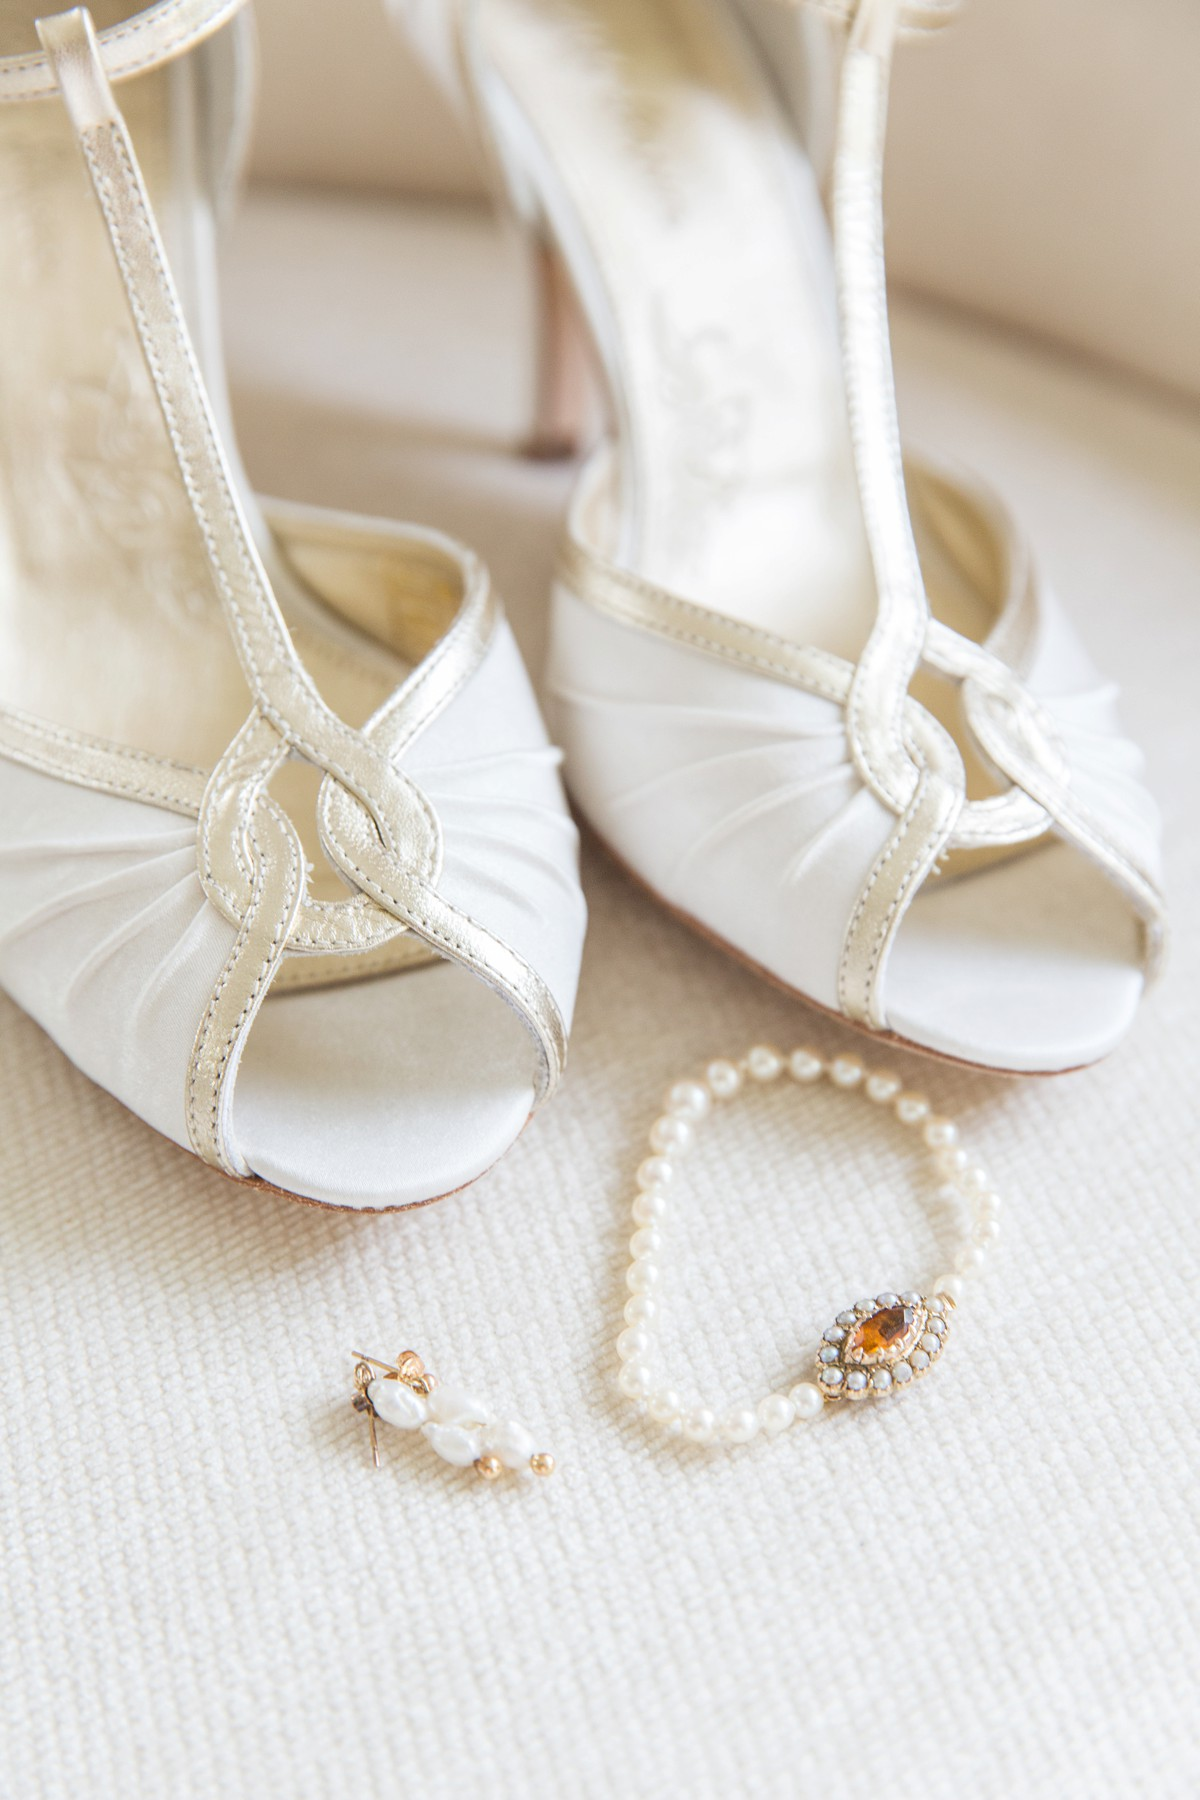 cream wedding shoe with pearl bracelet